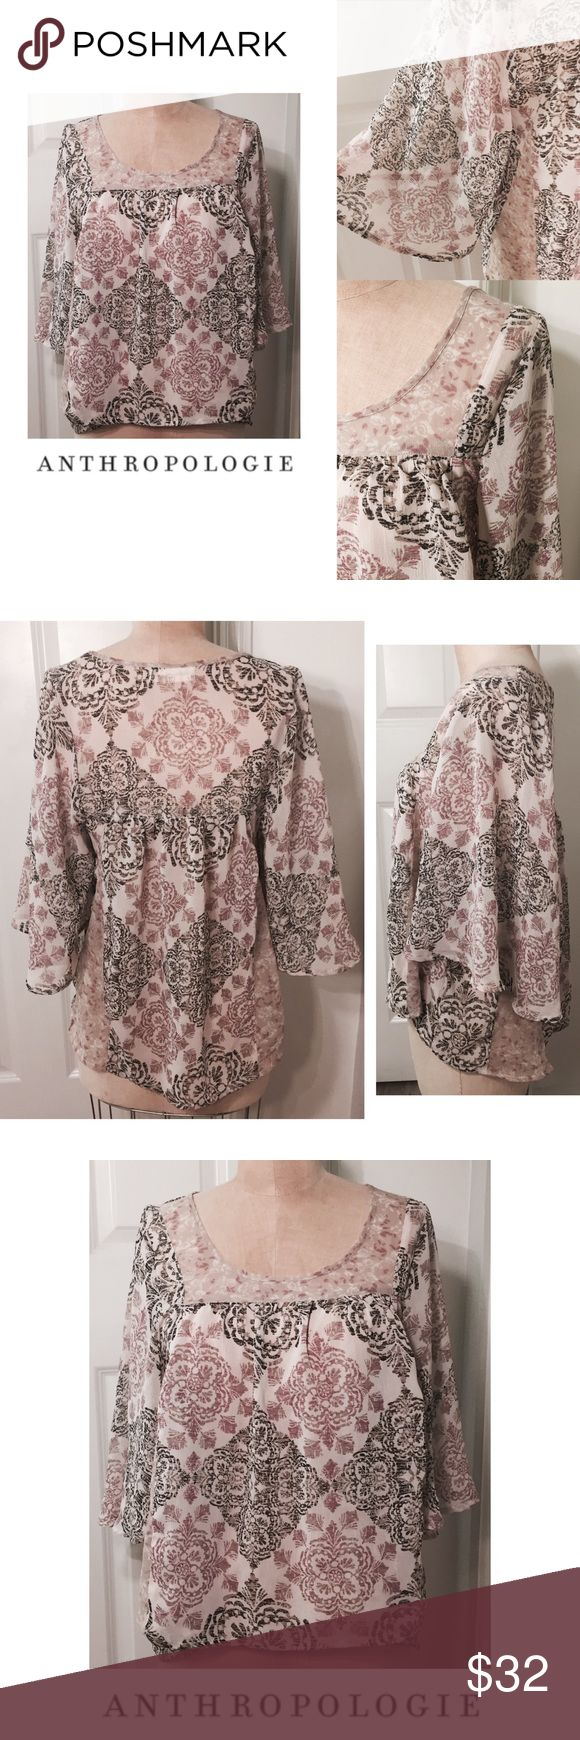 """ANTHROPOLOGIE flowing blouse, with bell sleeves ANTHROPOLOGIE flowing blouse, with bell sleeves, loose fit, approx 25"""" long and 18"""" across laying flat, great condition, by staring at stars.  99308 Anthropologie Tops Blouses"""